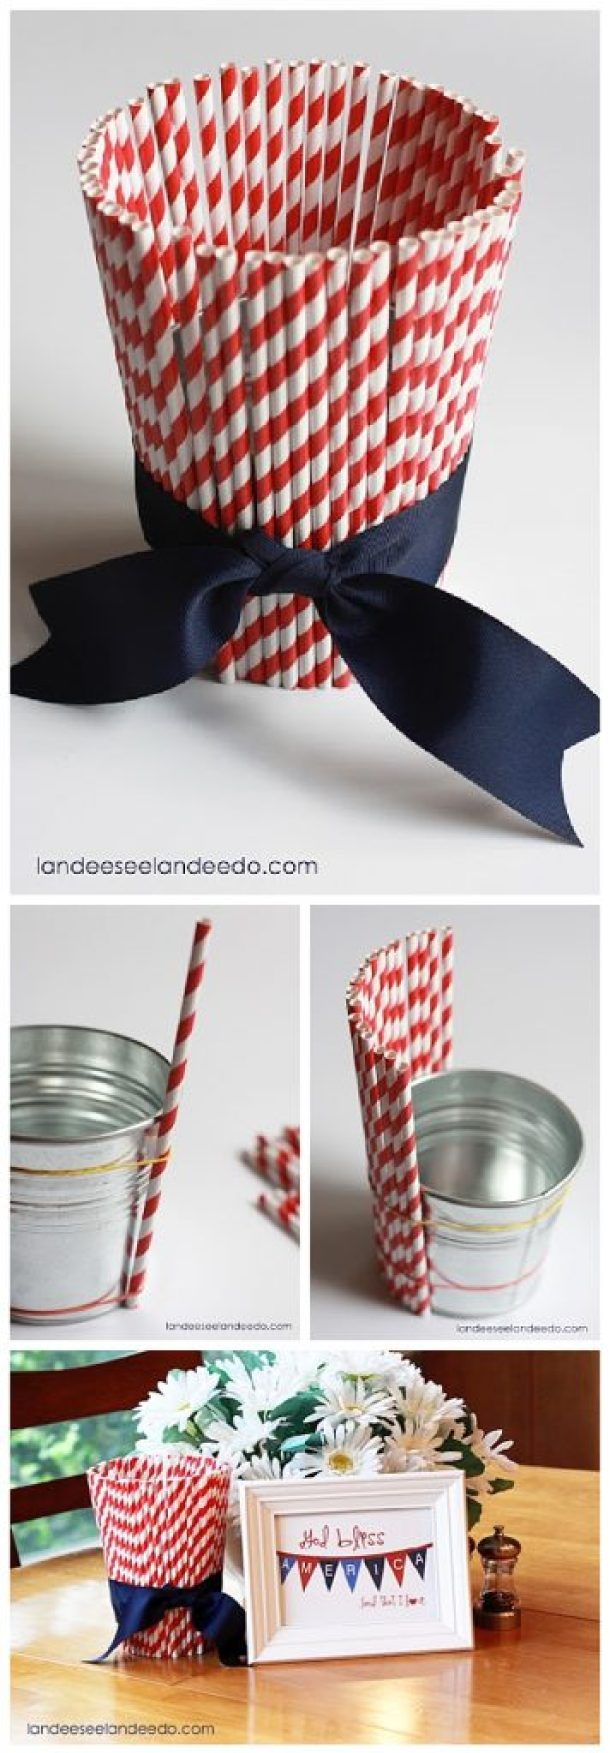 Easy 10 Minute 4th of July DIY Straw Bucket Craft Tutorial - Such a cute 4th of July decoration tutorial to make a little bucket to hold goodies, silk flowers or treats for Independence Day!